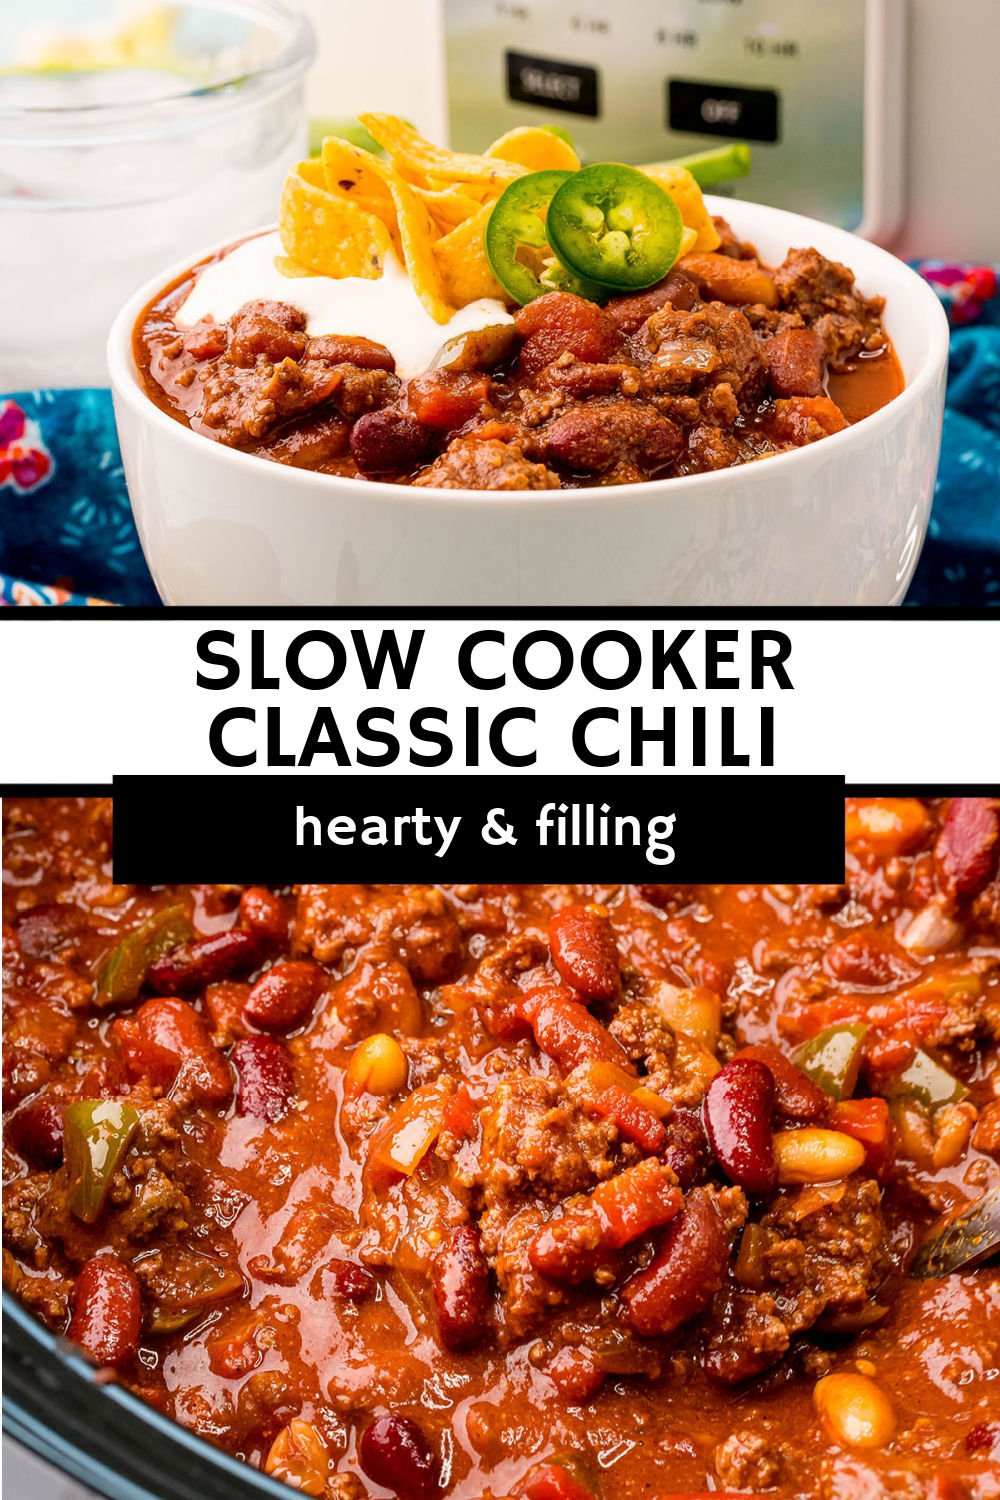 This thick and hearty classic slow cooker chili recipe is filling, easy, and full of flavor. Cooked slowly in the crockpot and then loaded with your favorite toppings, this meal makes everyone happy! | www.persnicketyplates.com